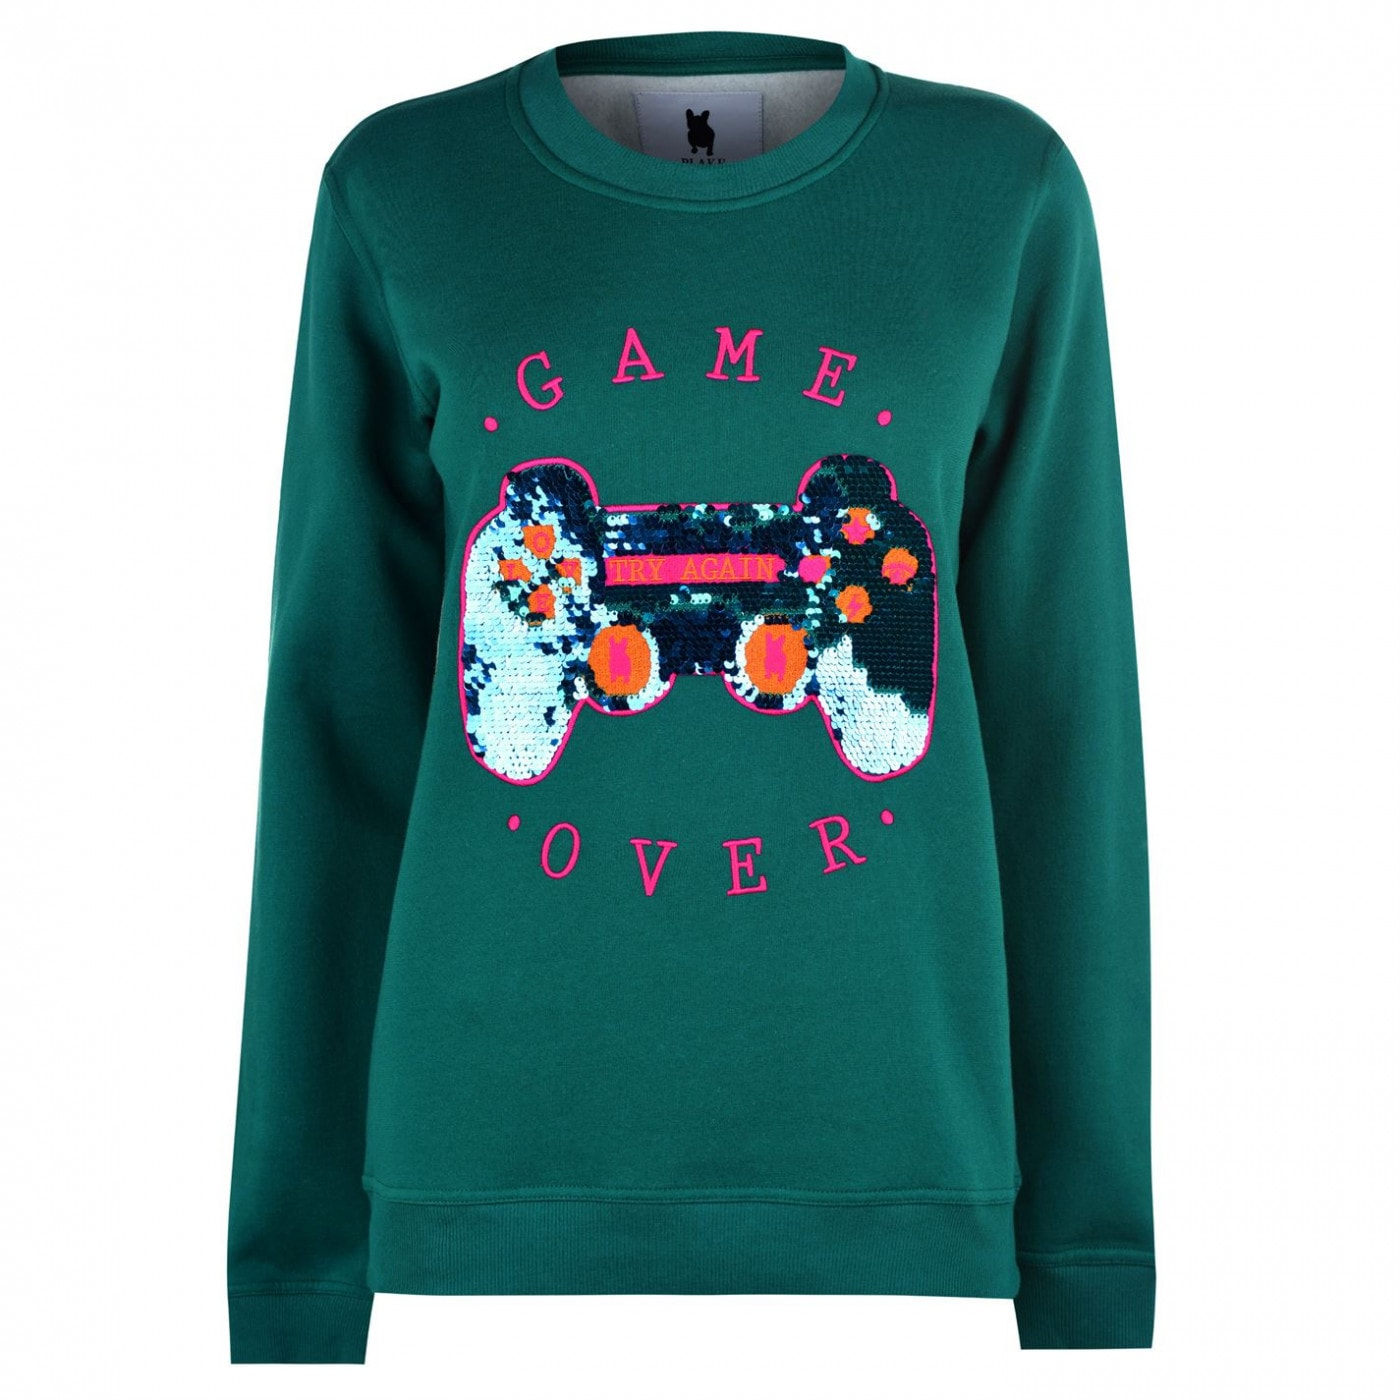 Blake Seven Game Over Sweatshirt